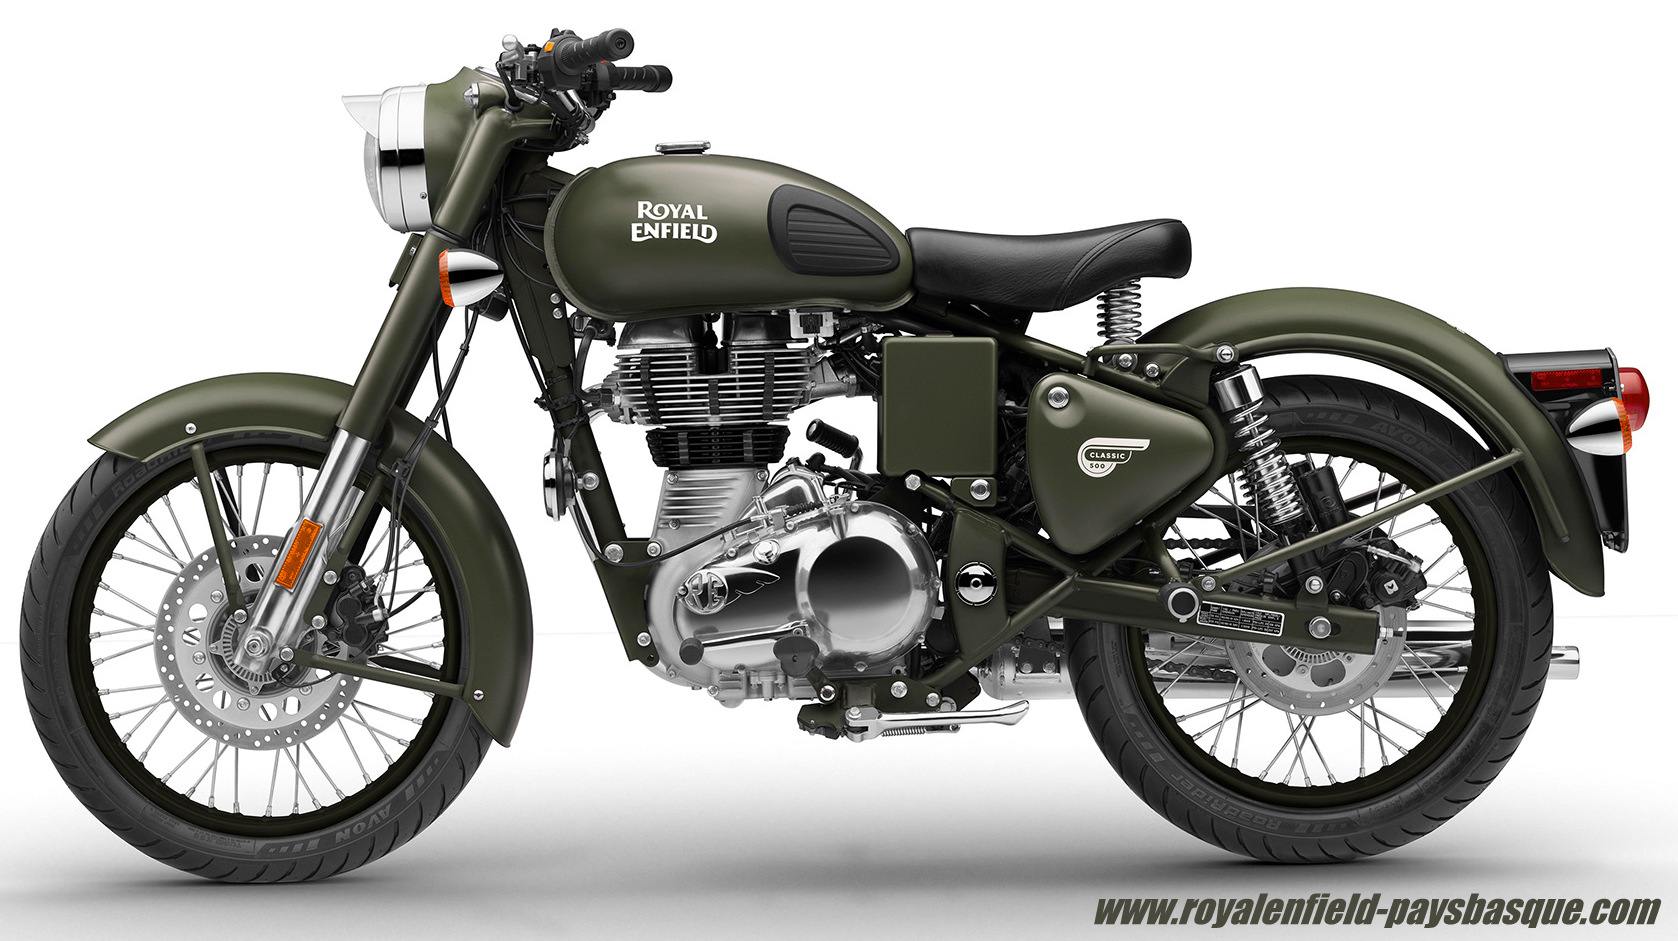 la classic military royal enfield royal enfield pays basque. Black Bedroom Furniture Sets. Home Design Ideas